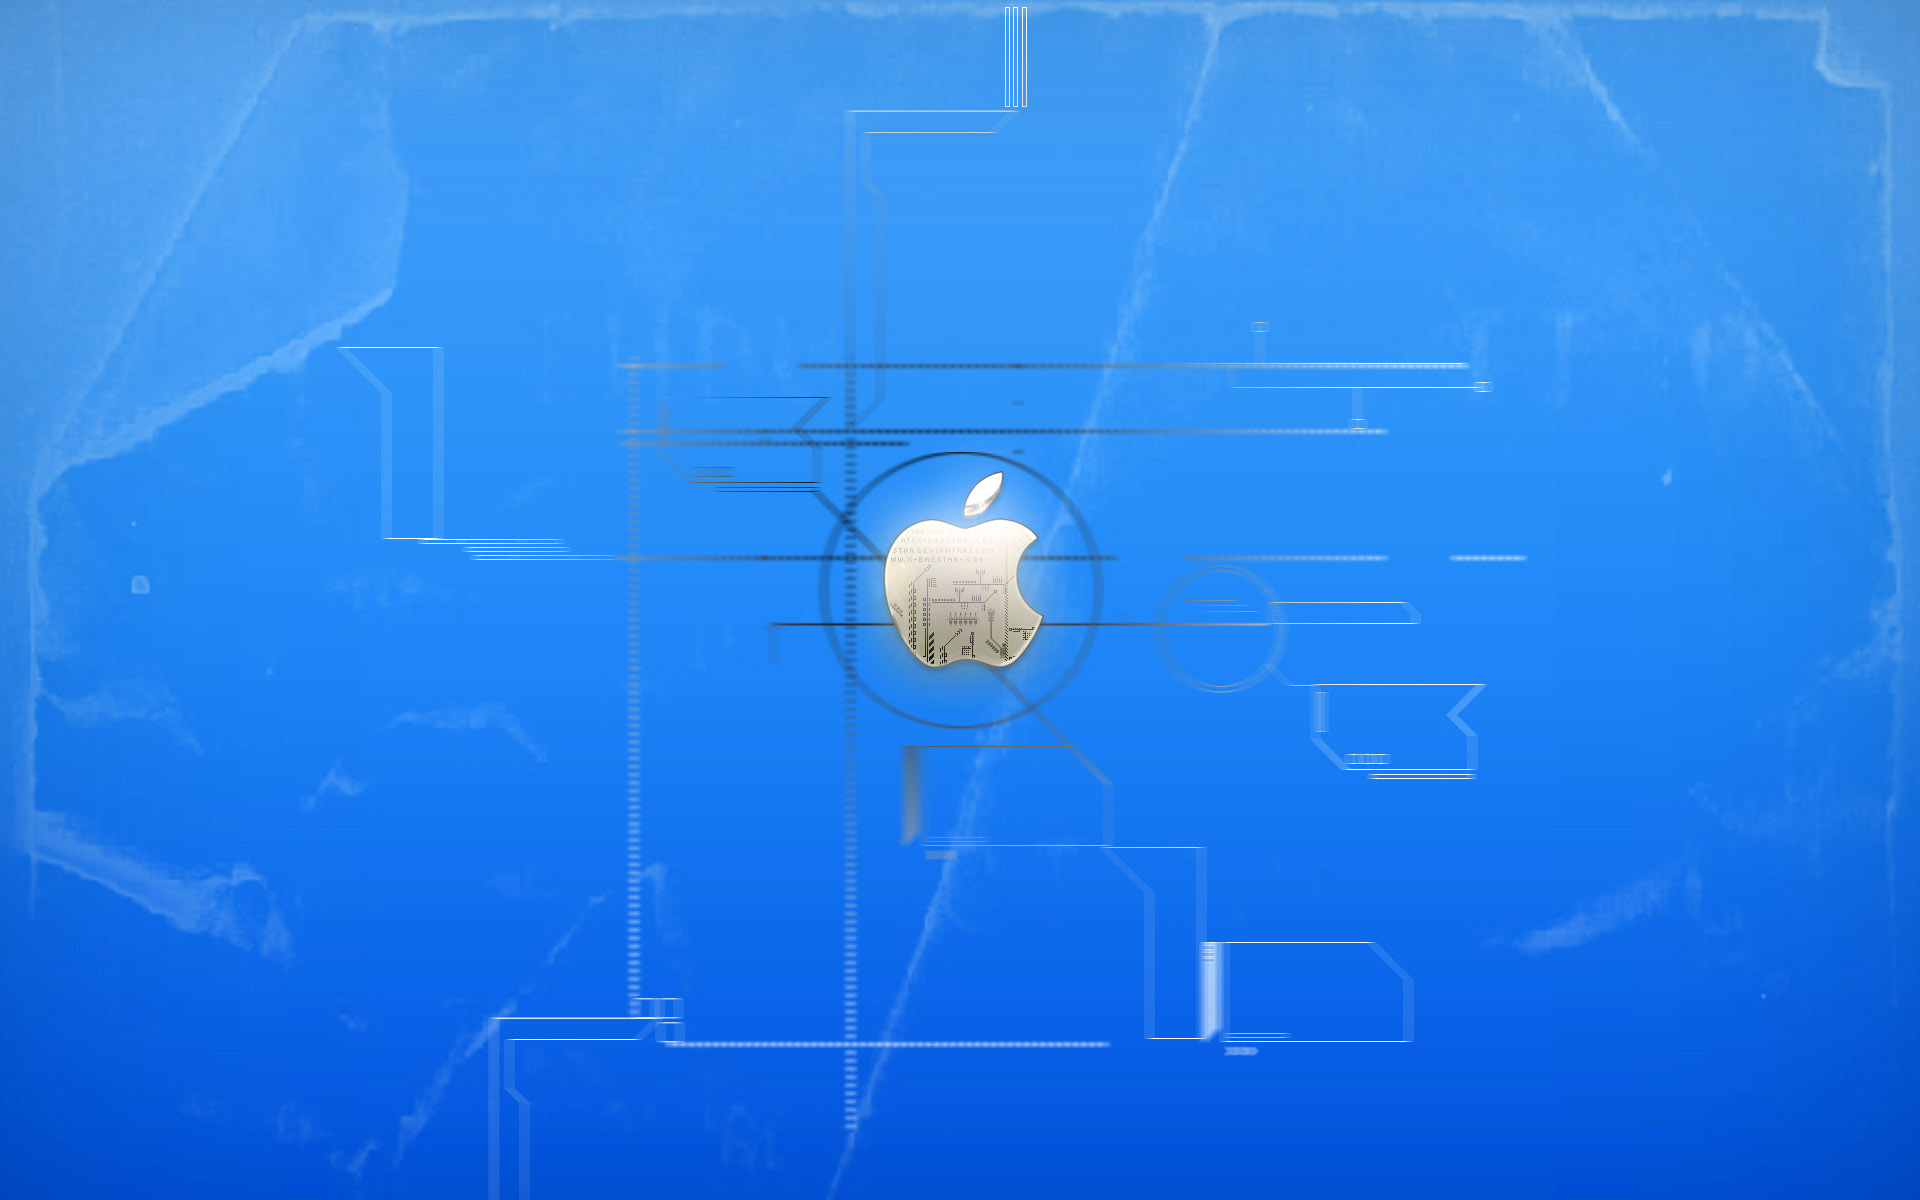 Apple wallpaper high definition 21227